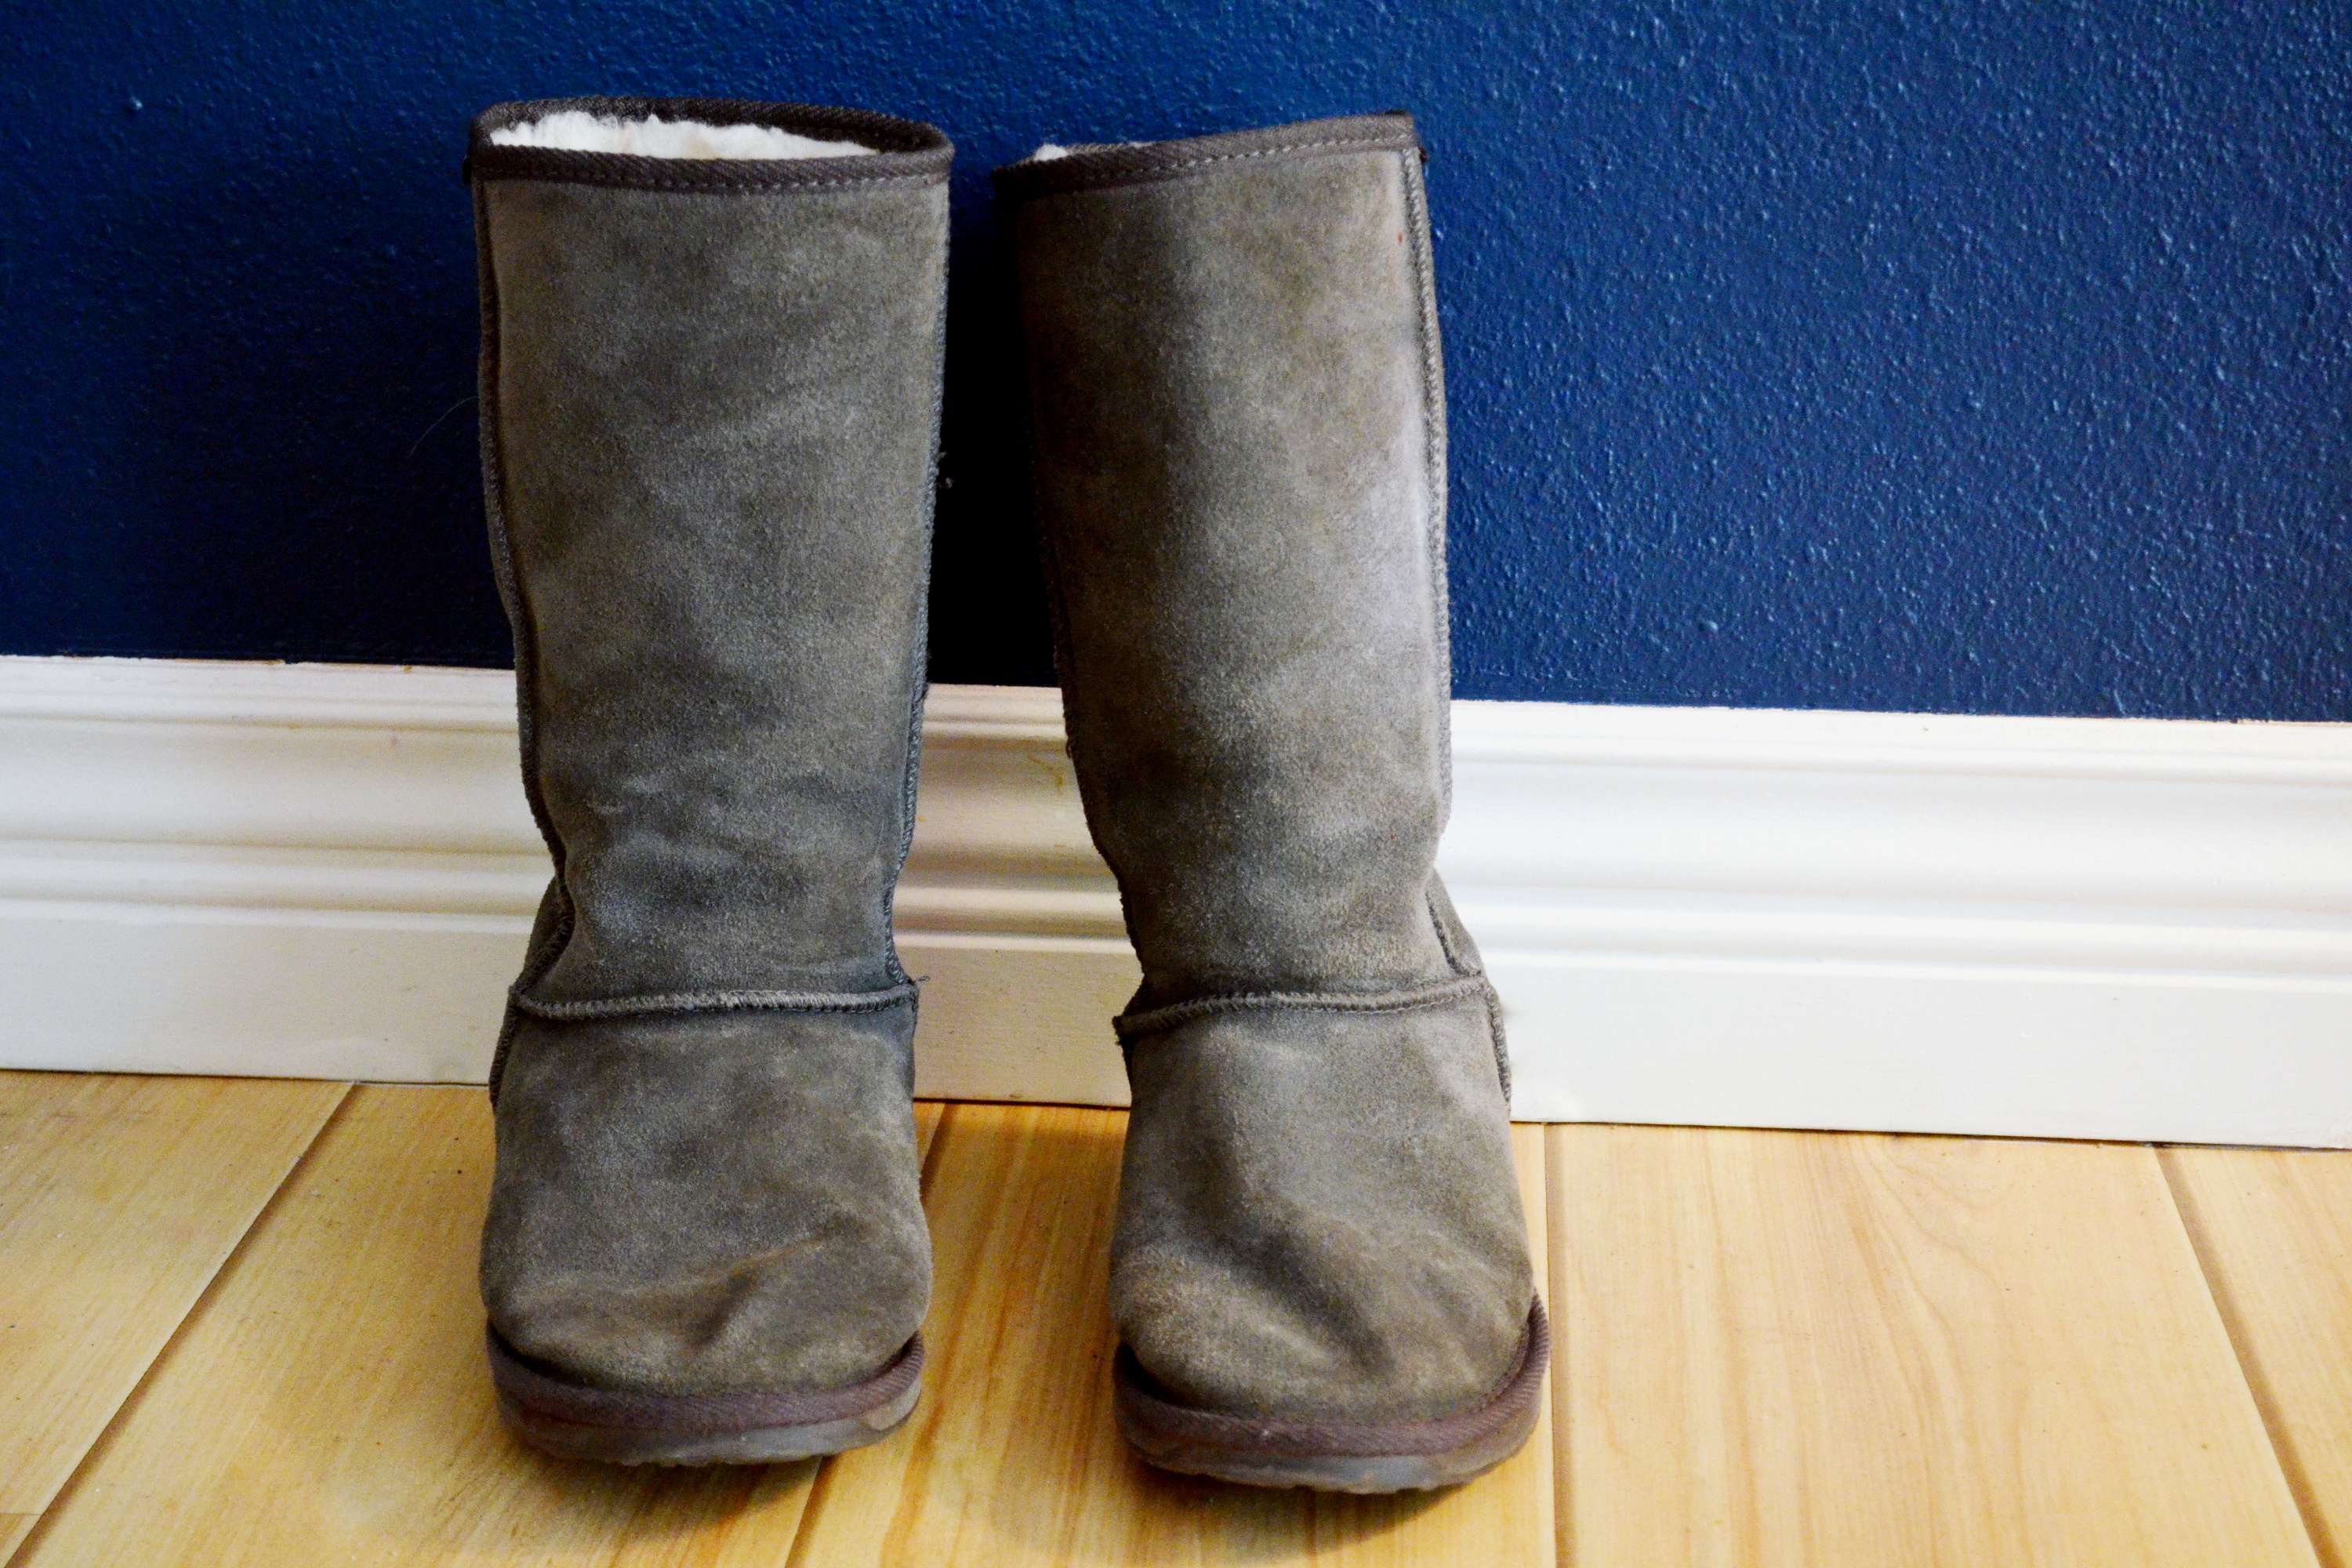 c6f4dd6fcb3 How to Remove Stains on Uggs | eHow